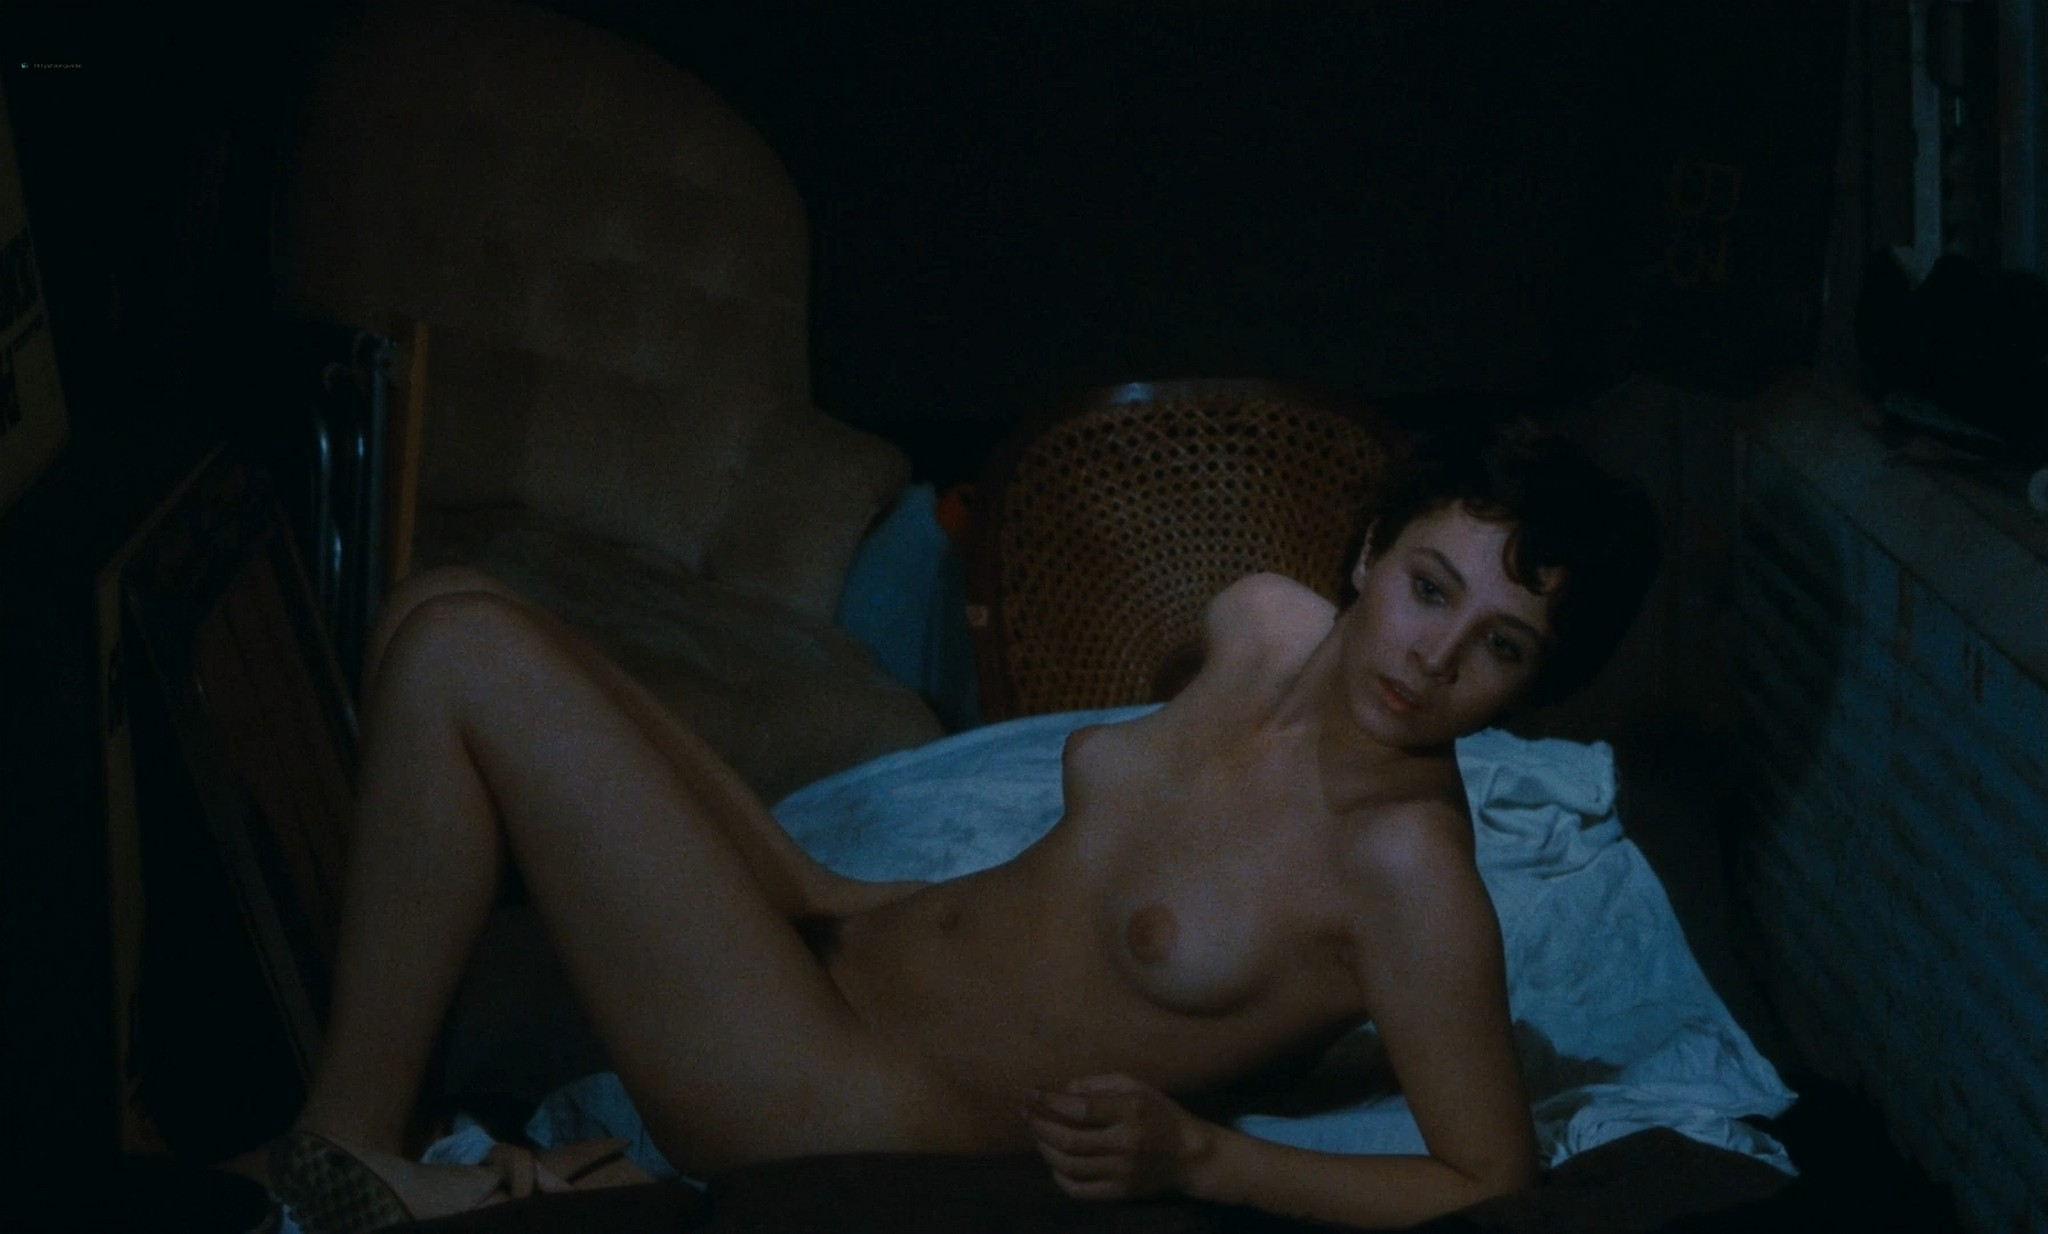 Marina Pierro nude sex Gaelle Legrand and Pascale Christophe nude bush and sex Les heroines du mal 1979 1080p BluRay REMUX 23